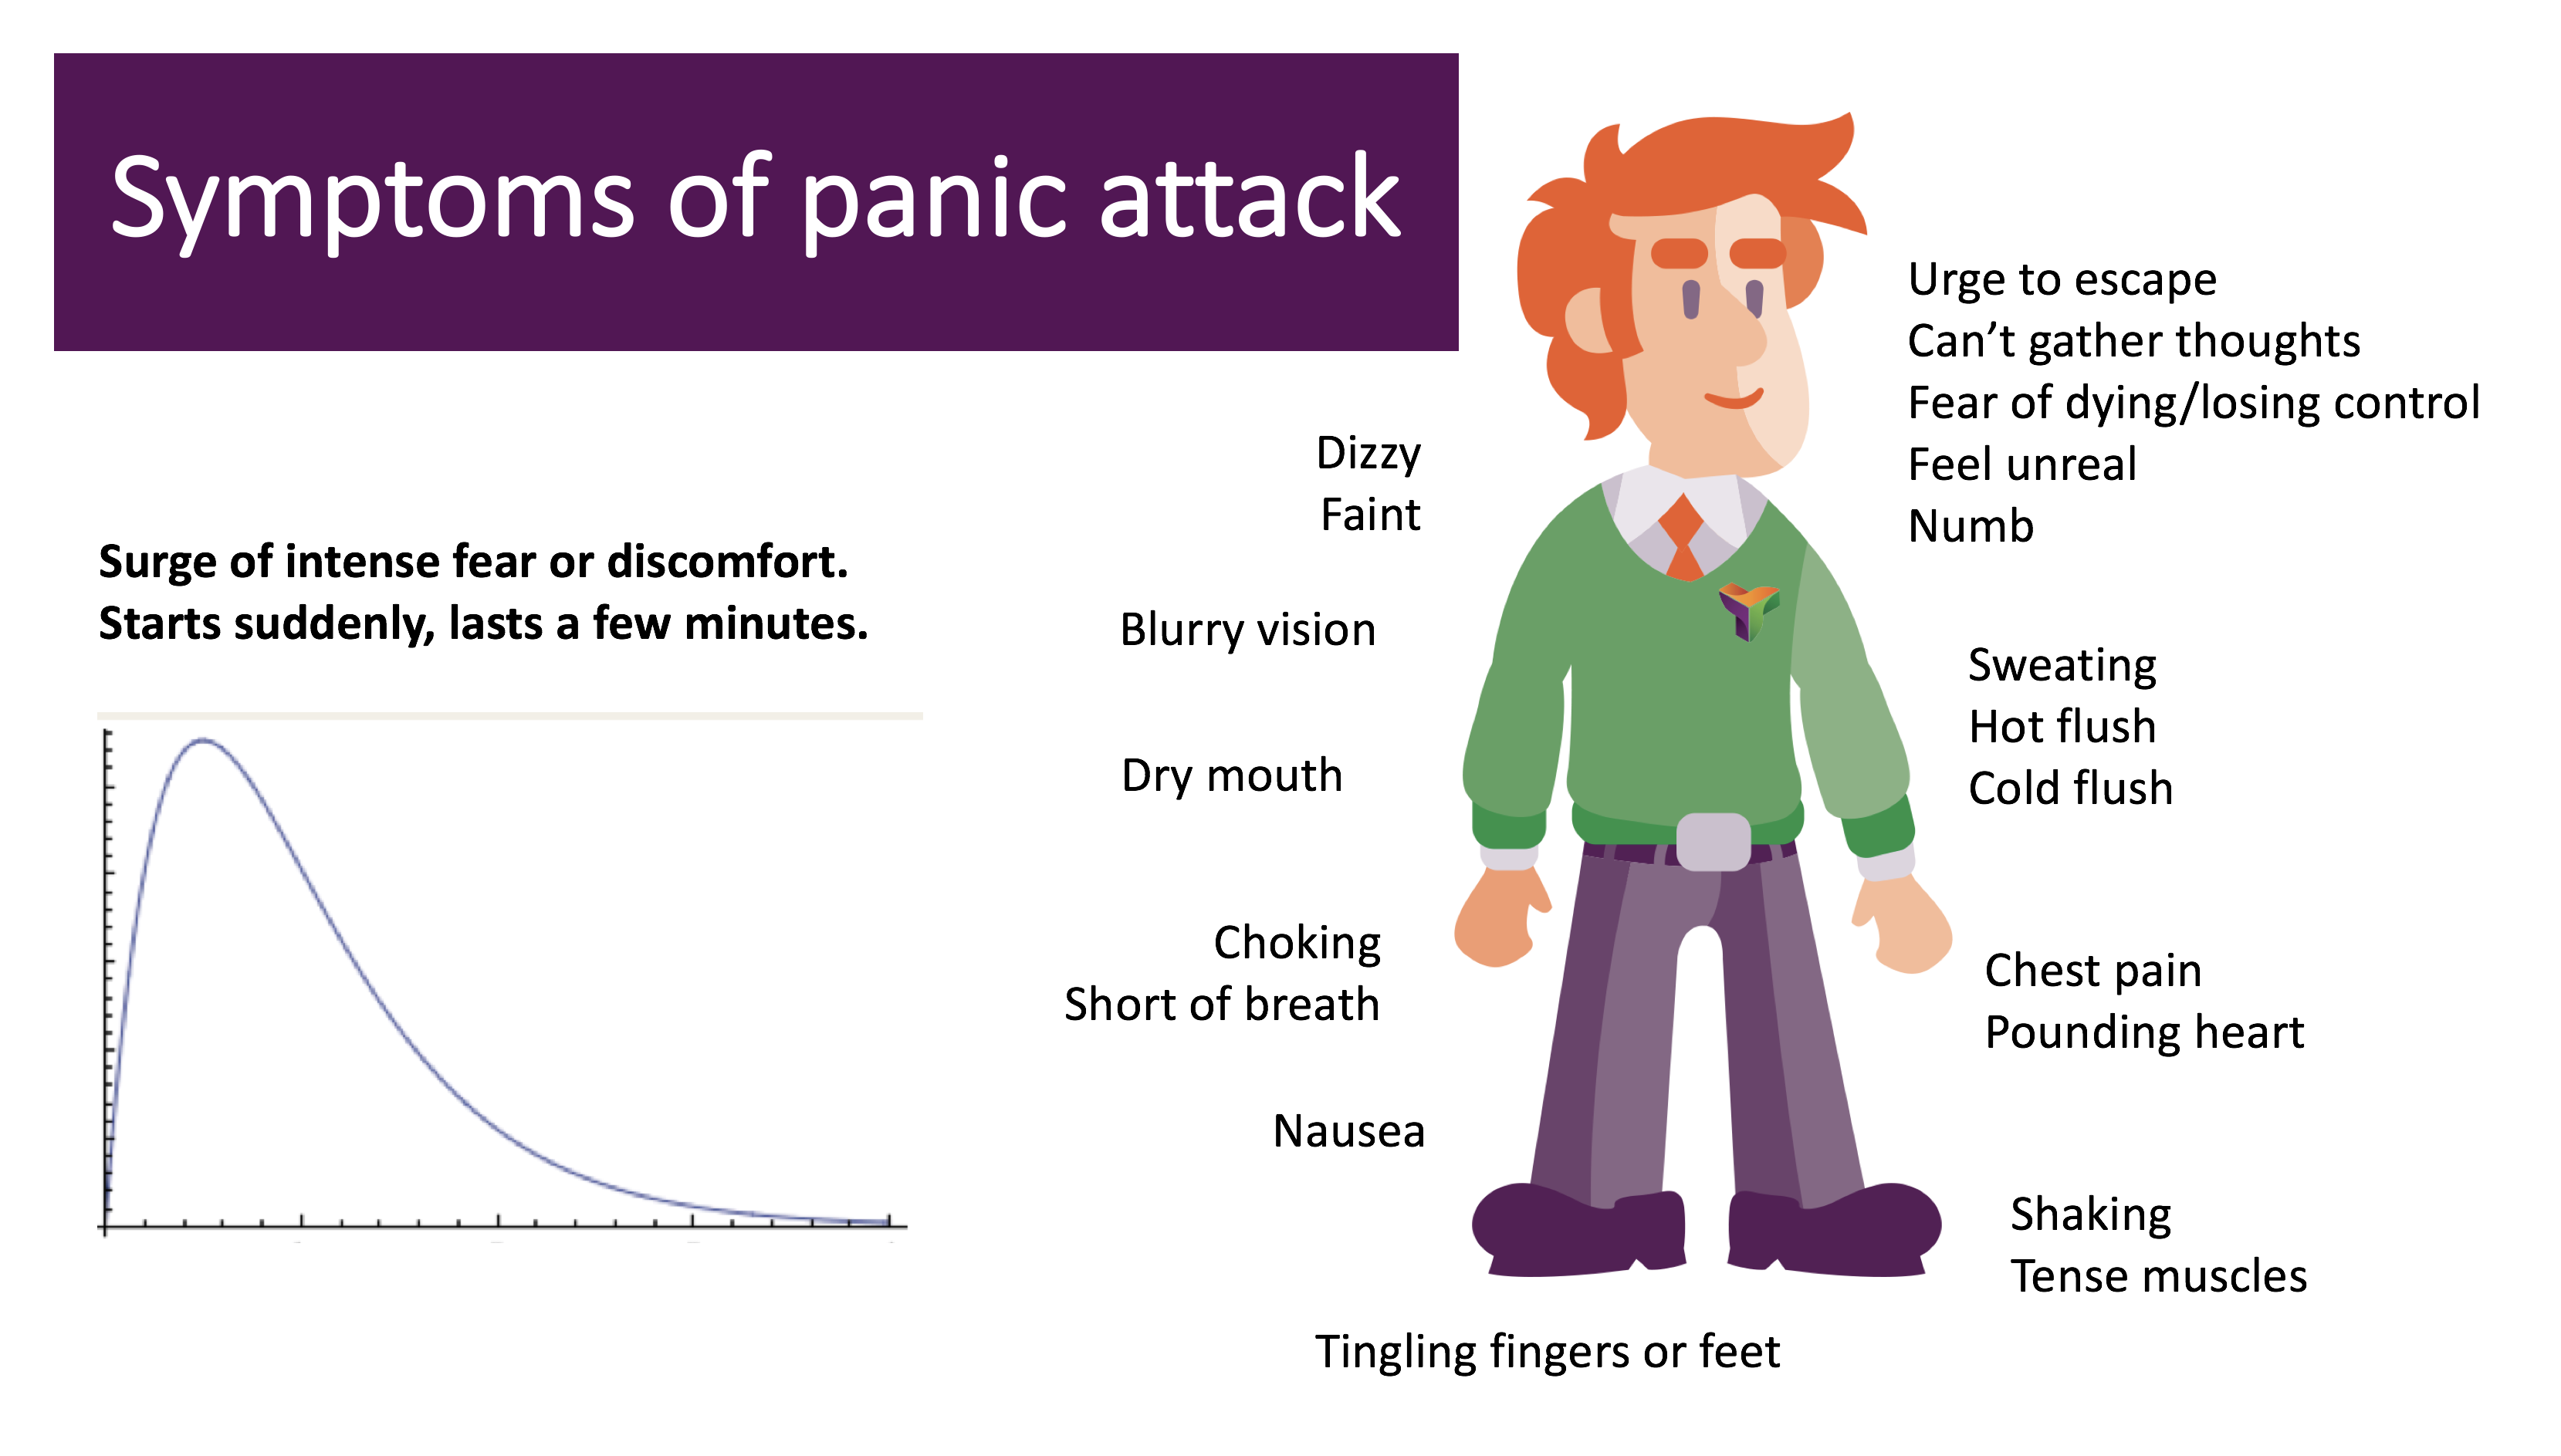 asthma and anxiety info-graphic on symptoms of panic attack